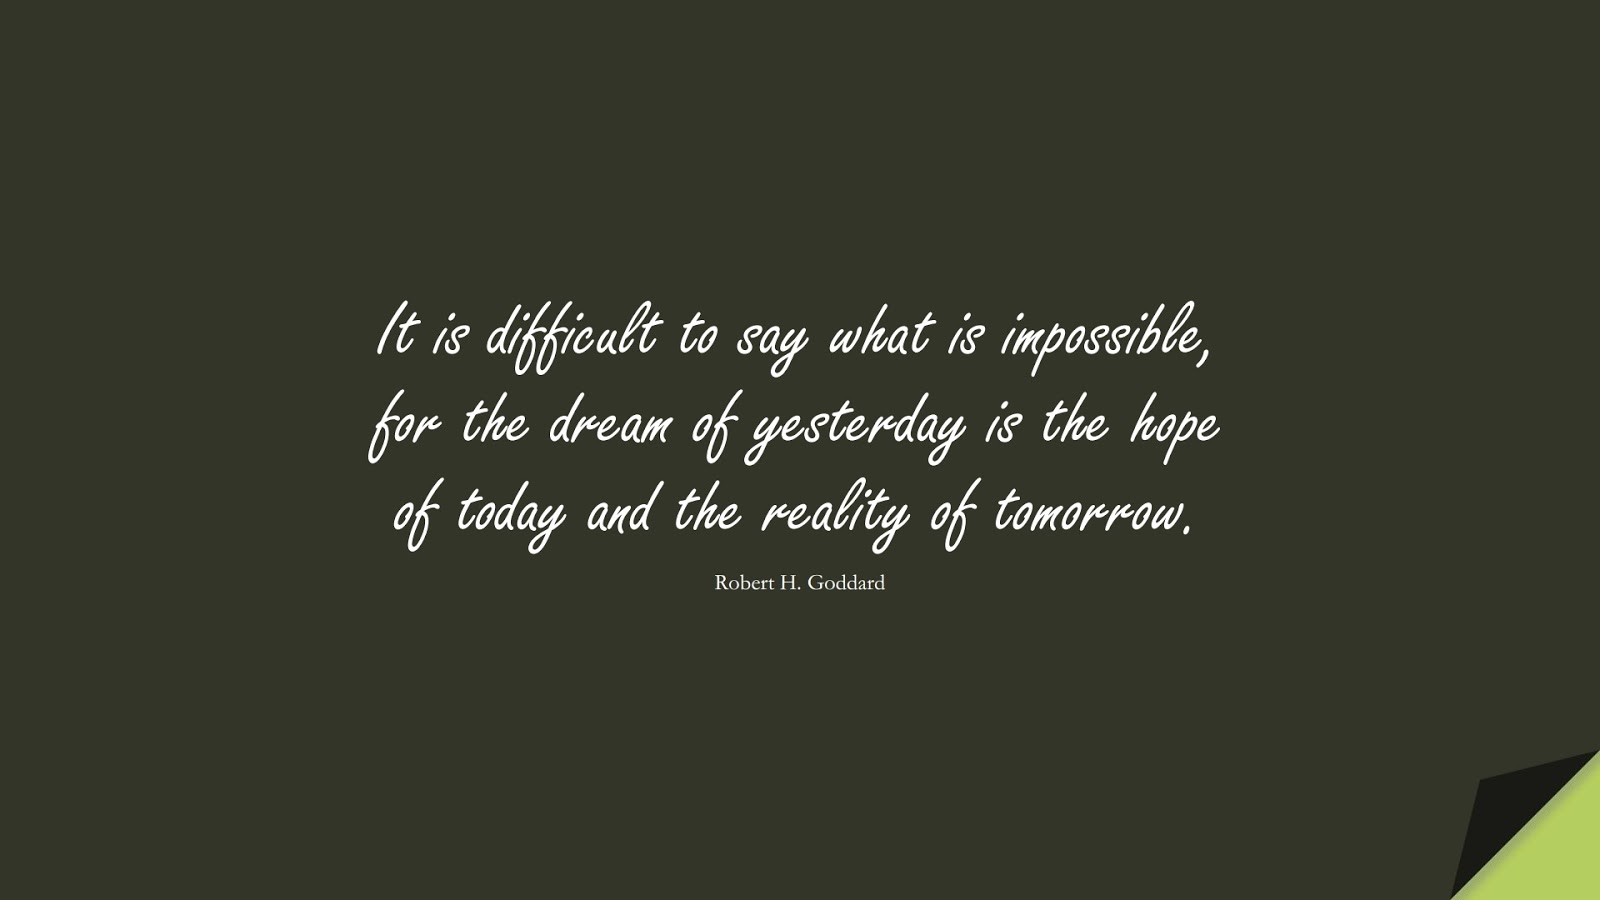 It is difficult to say what is impossible, for the dream of yesterday is the hope of today and the reality of tomorrow. (Robert H. Goddard);  #HopeQuotes